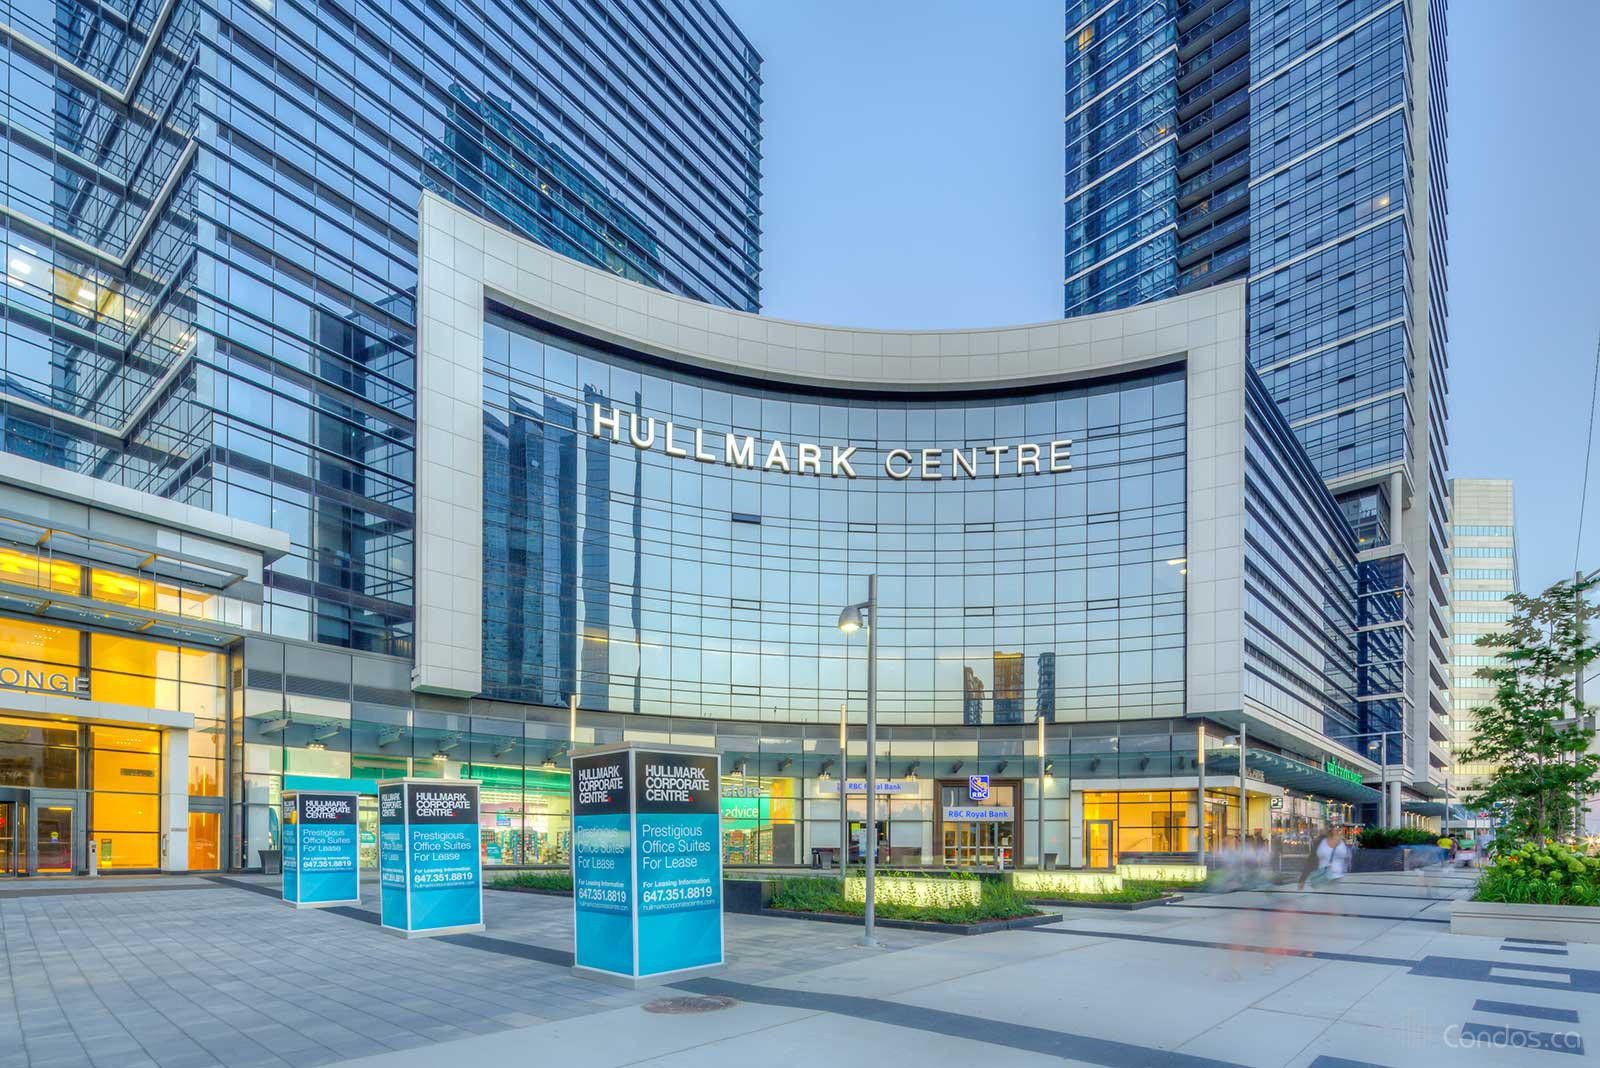 Hullmark Centre Ⅱ at 5 Sheppard Ave E, Toronto 1